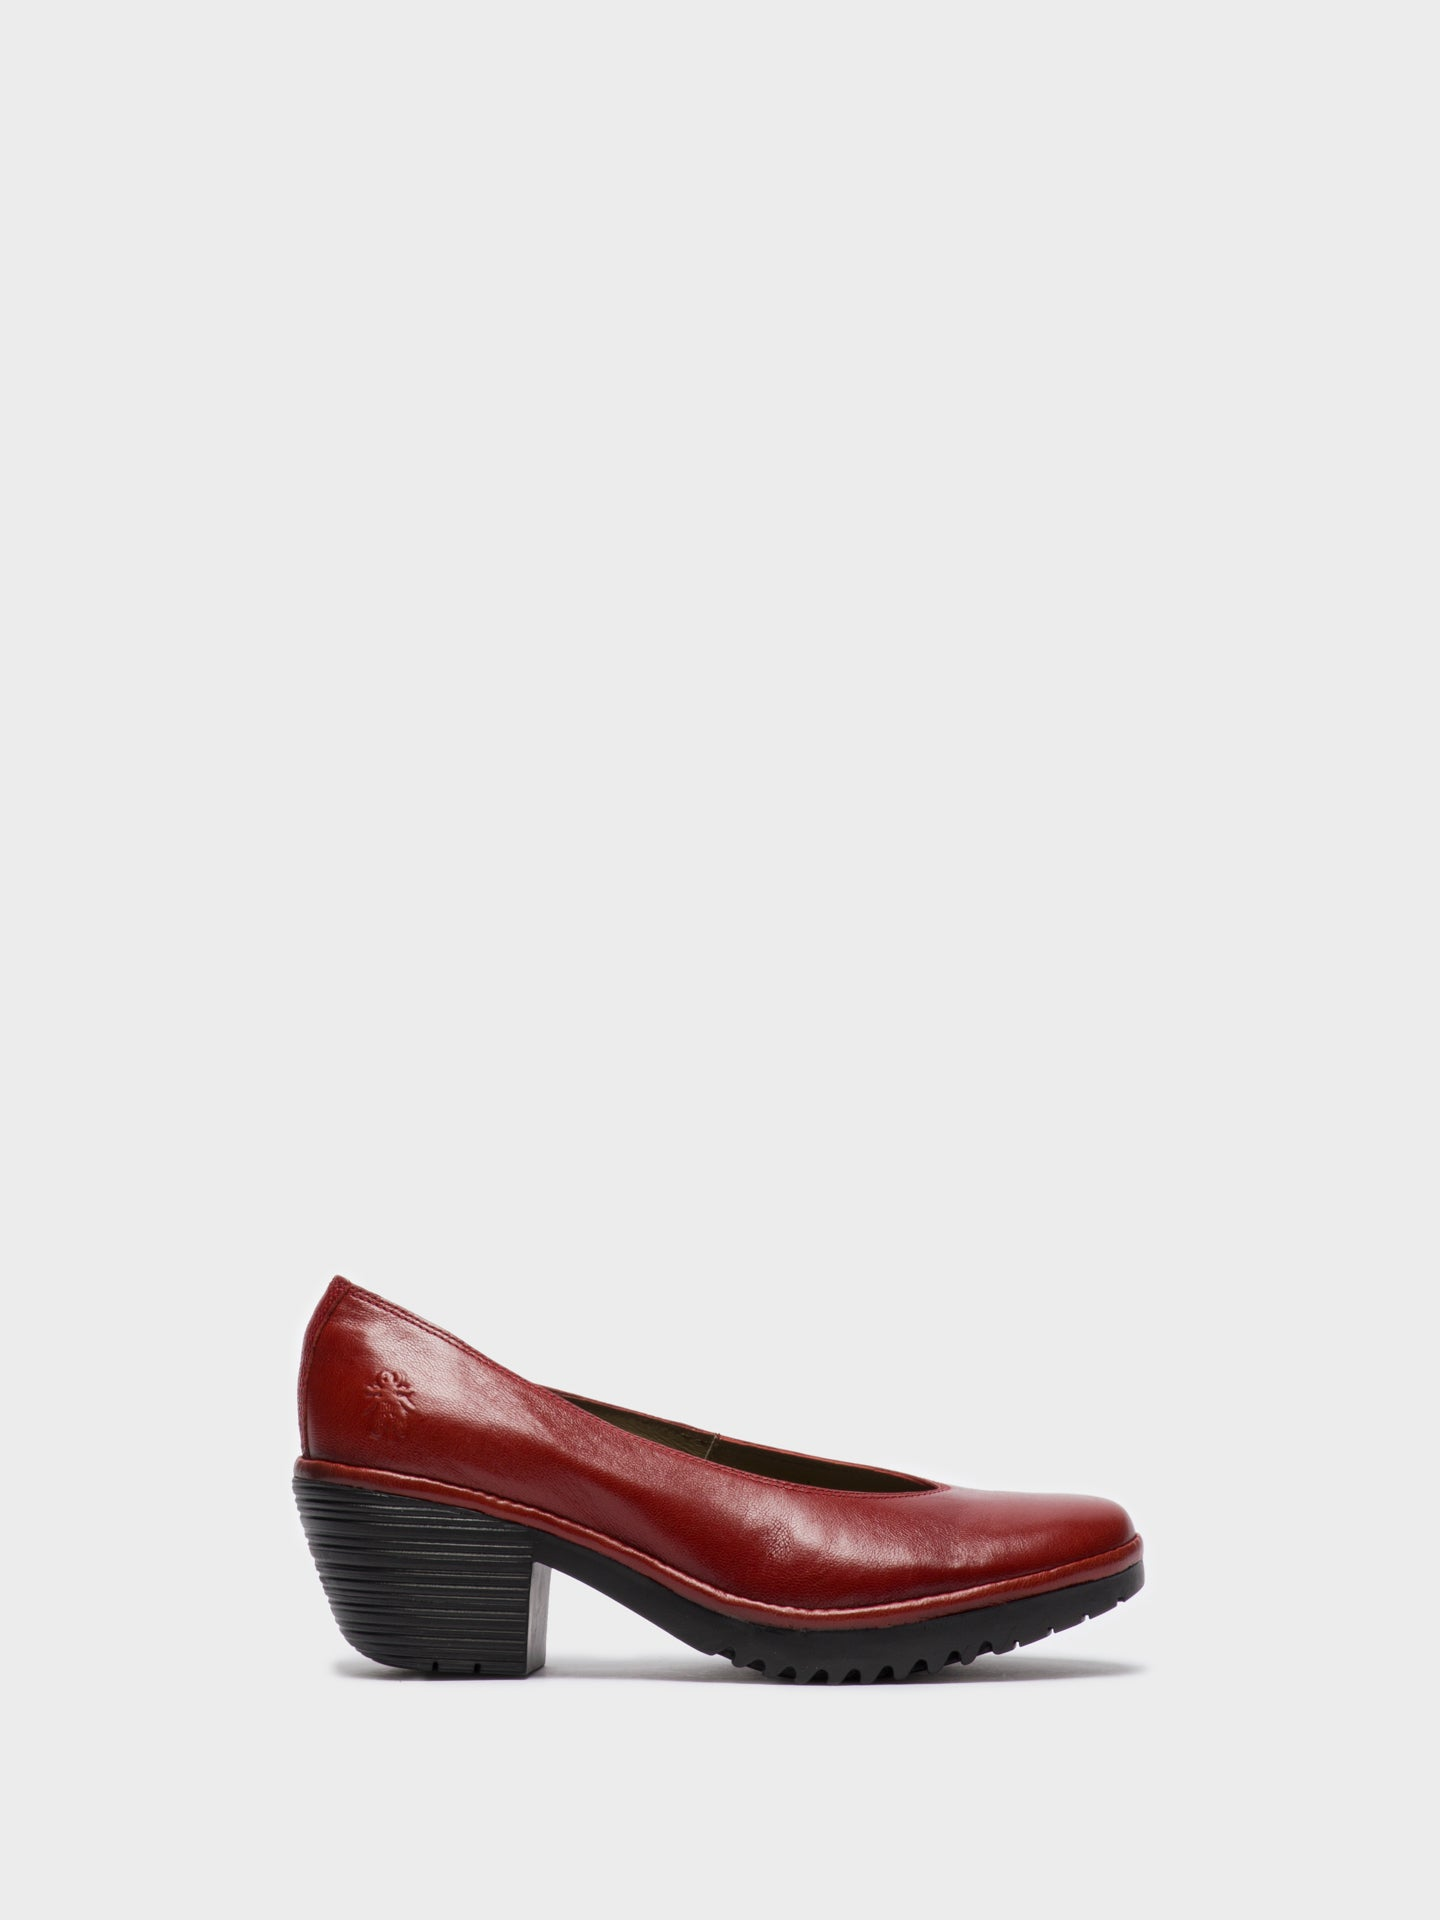 Fly London Red Round Toe Pumps